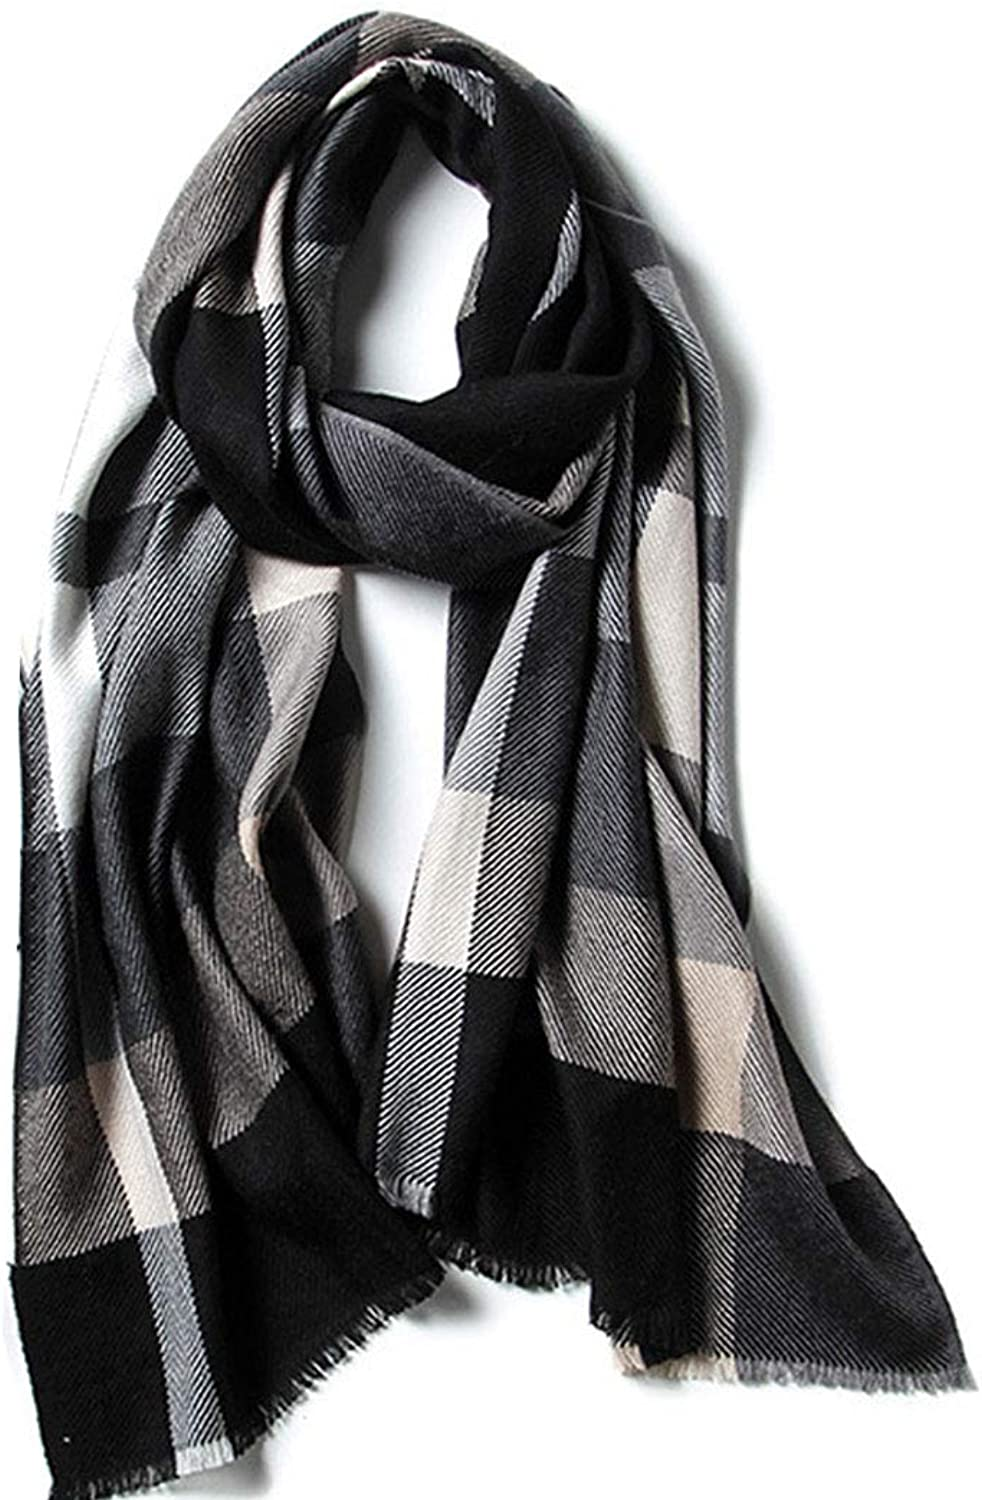 HUIFANG Autumn and Winter New Wool Thin Scarf Men and Women Couple Black and White Plaid Red Lattice Business Wild to Keep Warm 55  195CM A (color   Black, Size   55  195CM)